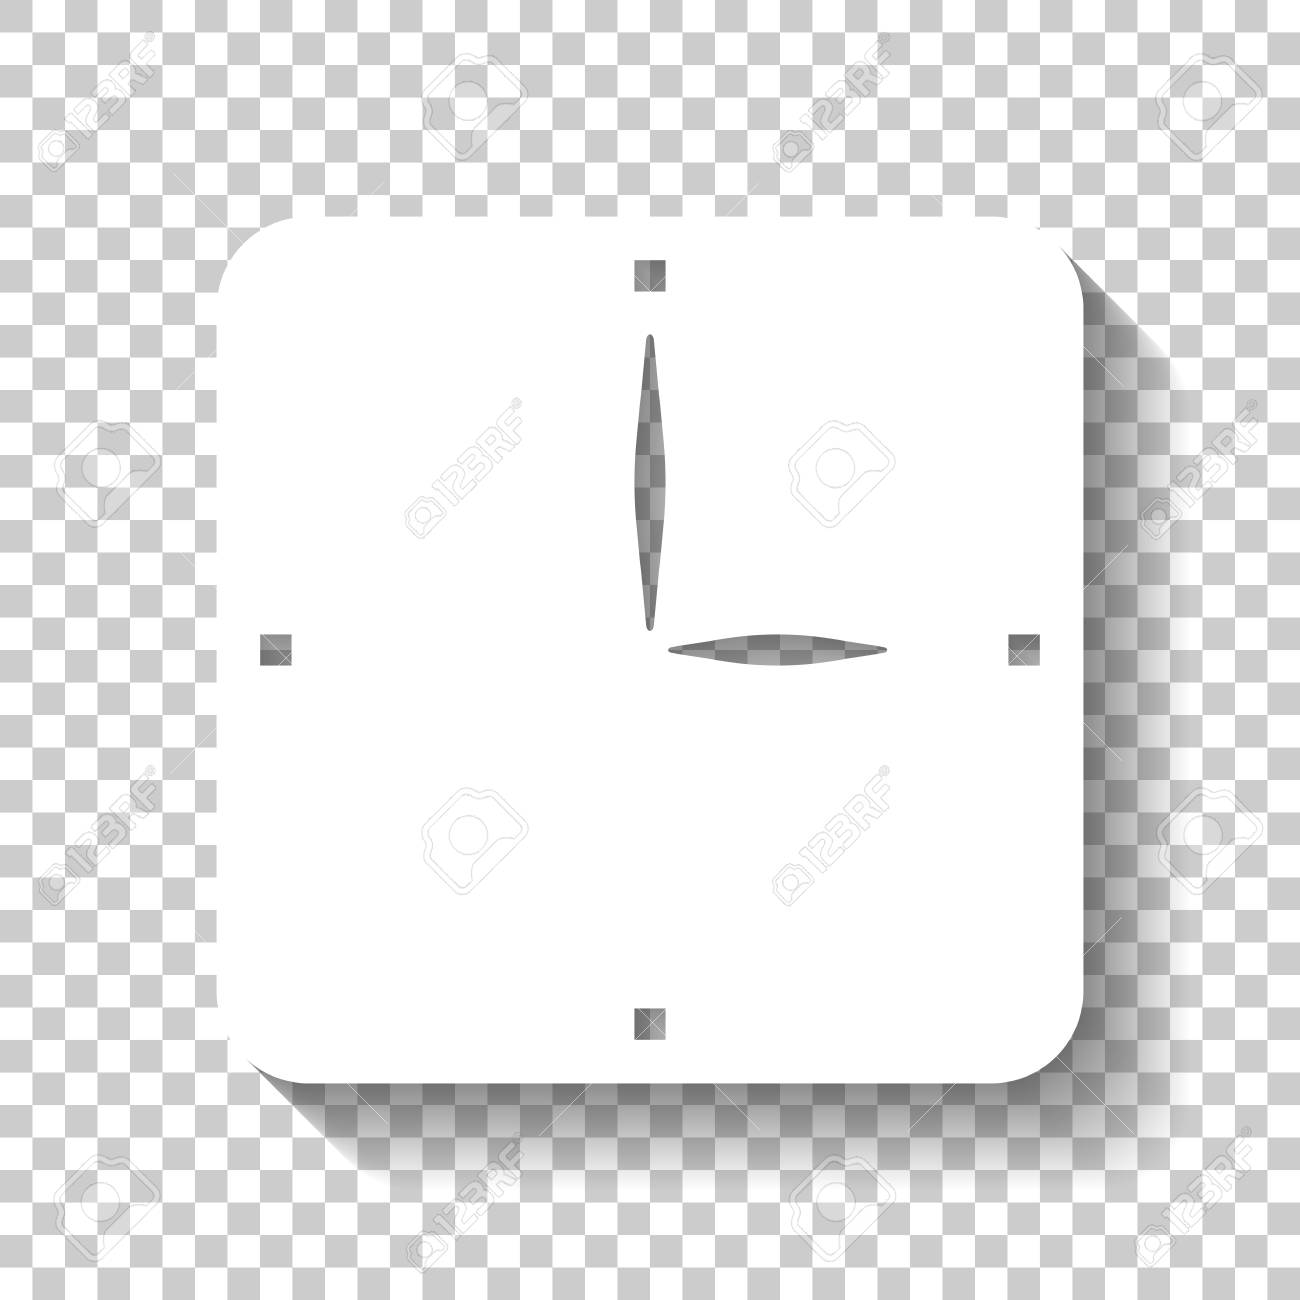 Simple clock icon  White icon with shadow on transparent background